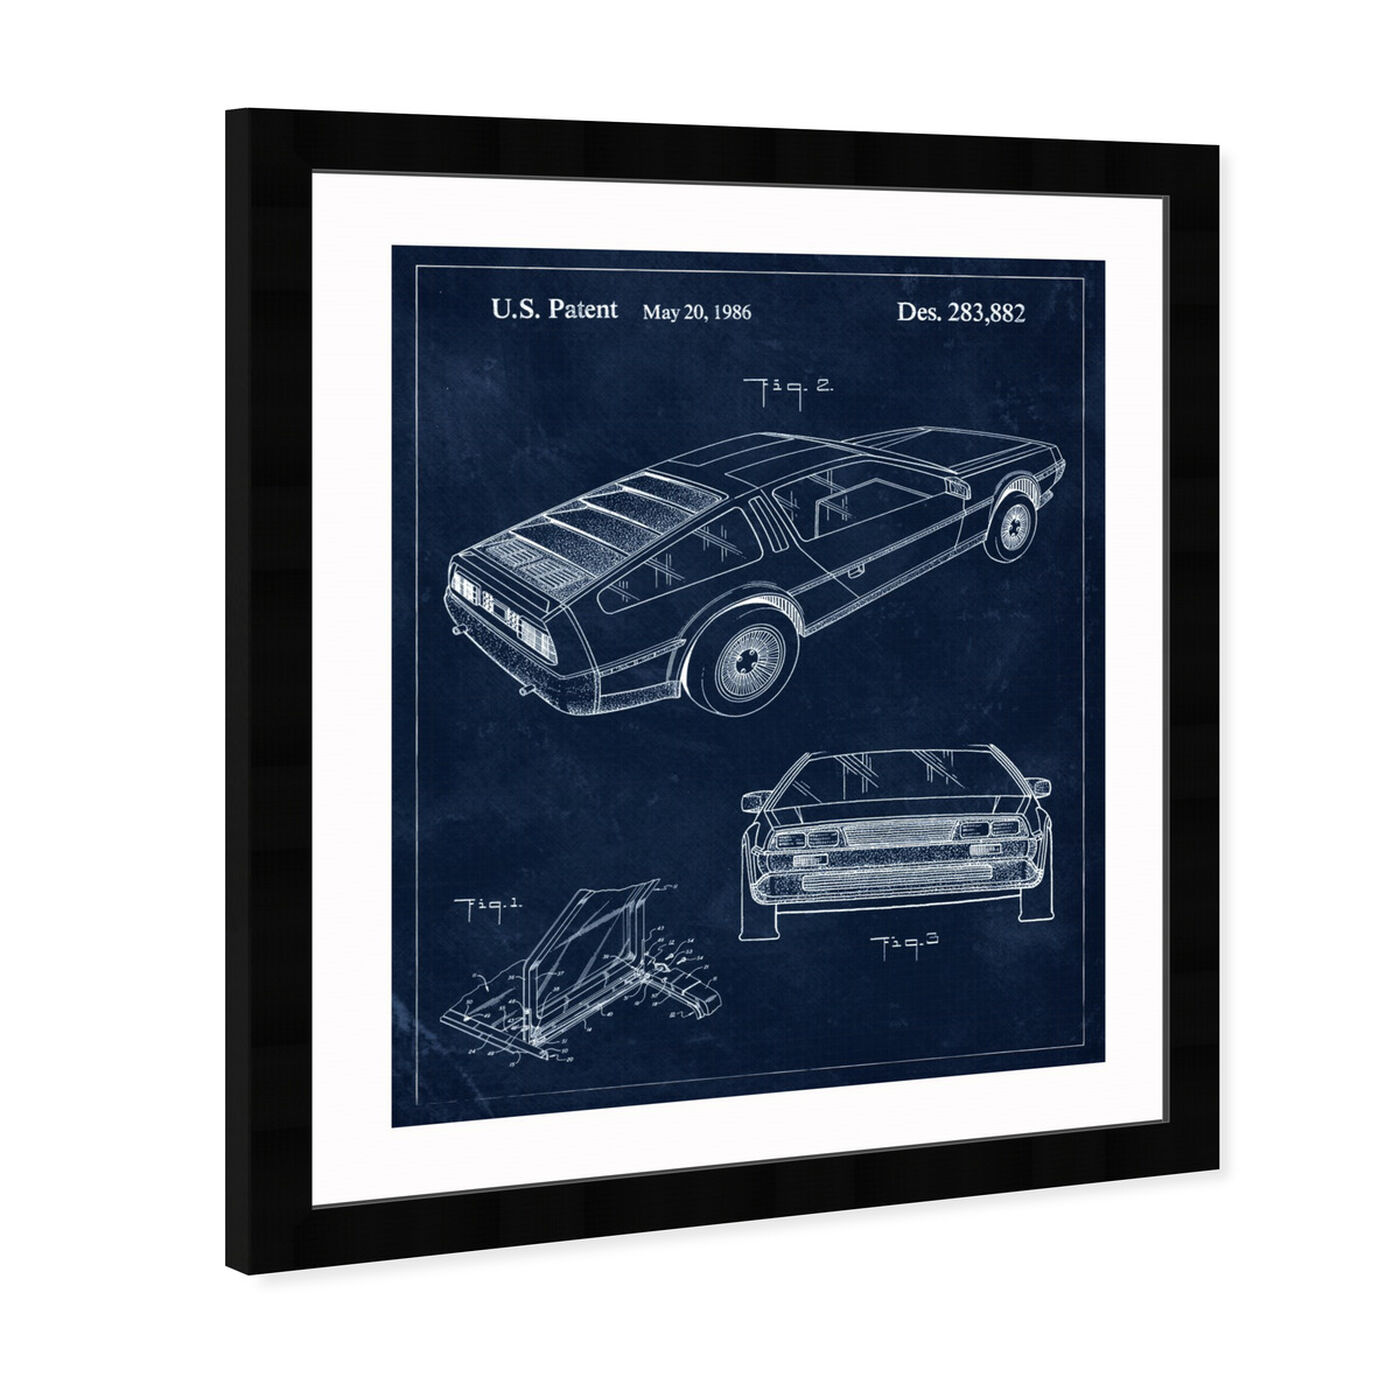 Angled view of Delorean, 1986 II featuring transportation and automobiles art.